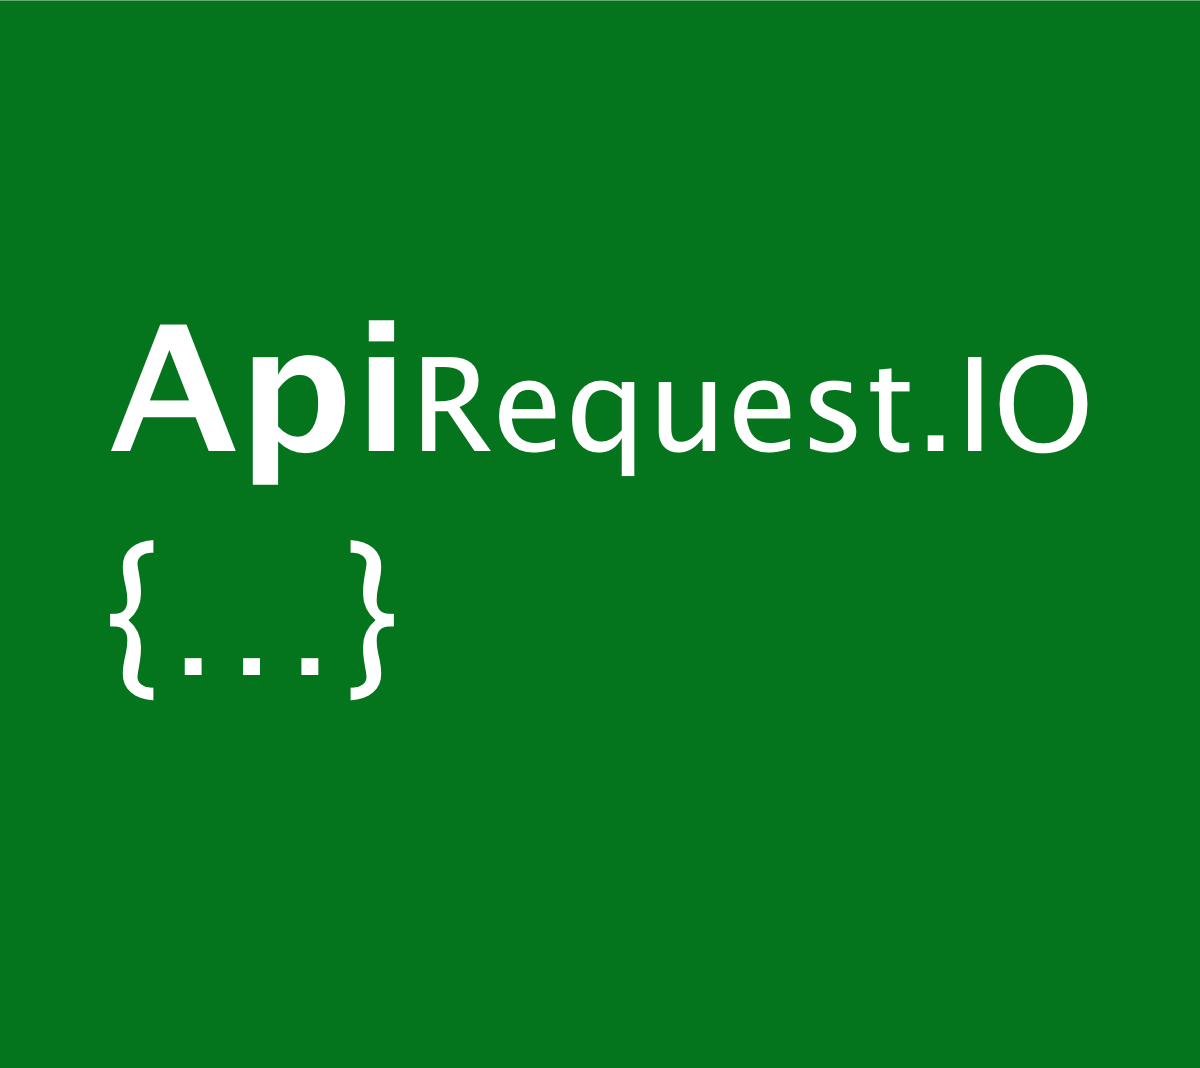 ApiRequest io | Make HTTP requests and share